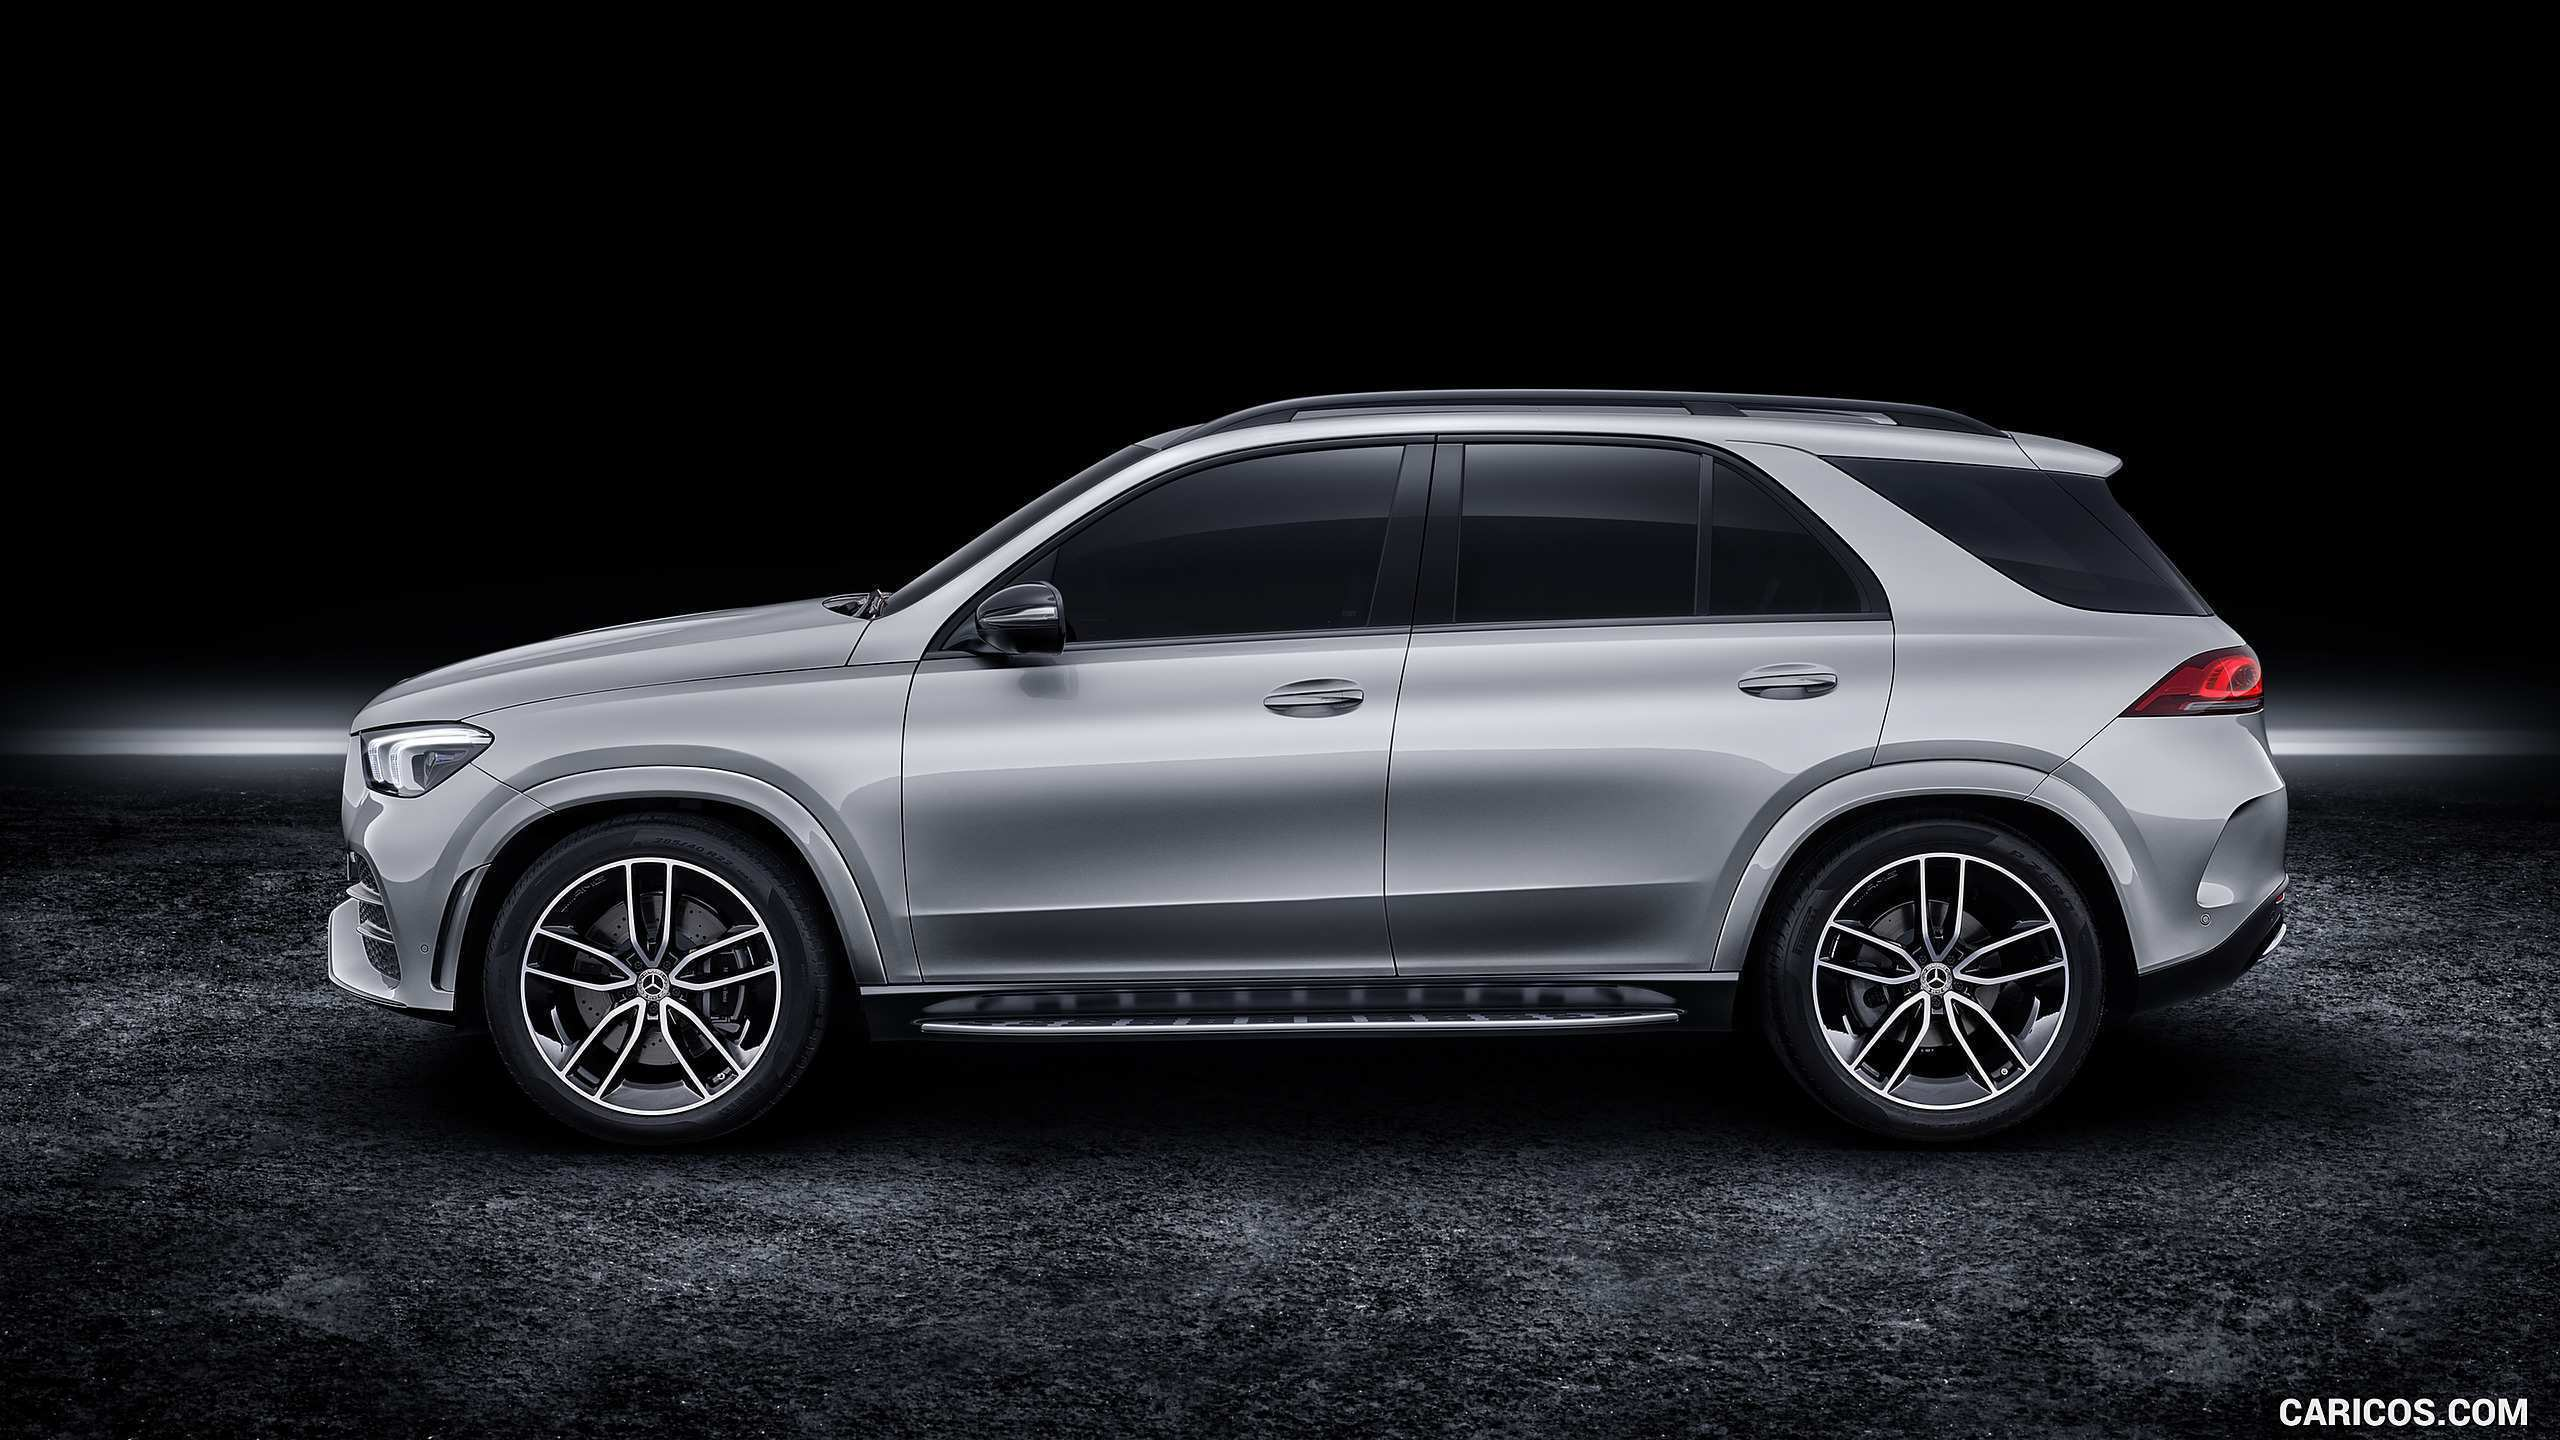 46 New Mercedes Gle 2020 Amg History by Mercedes Gle 2020 Amg